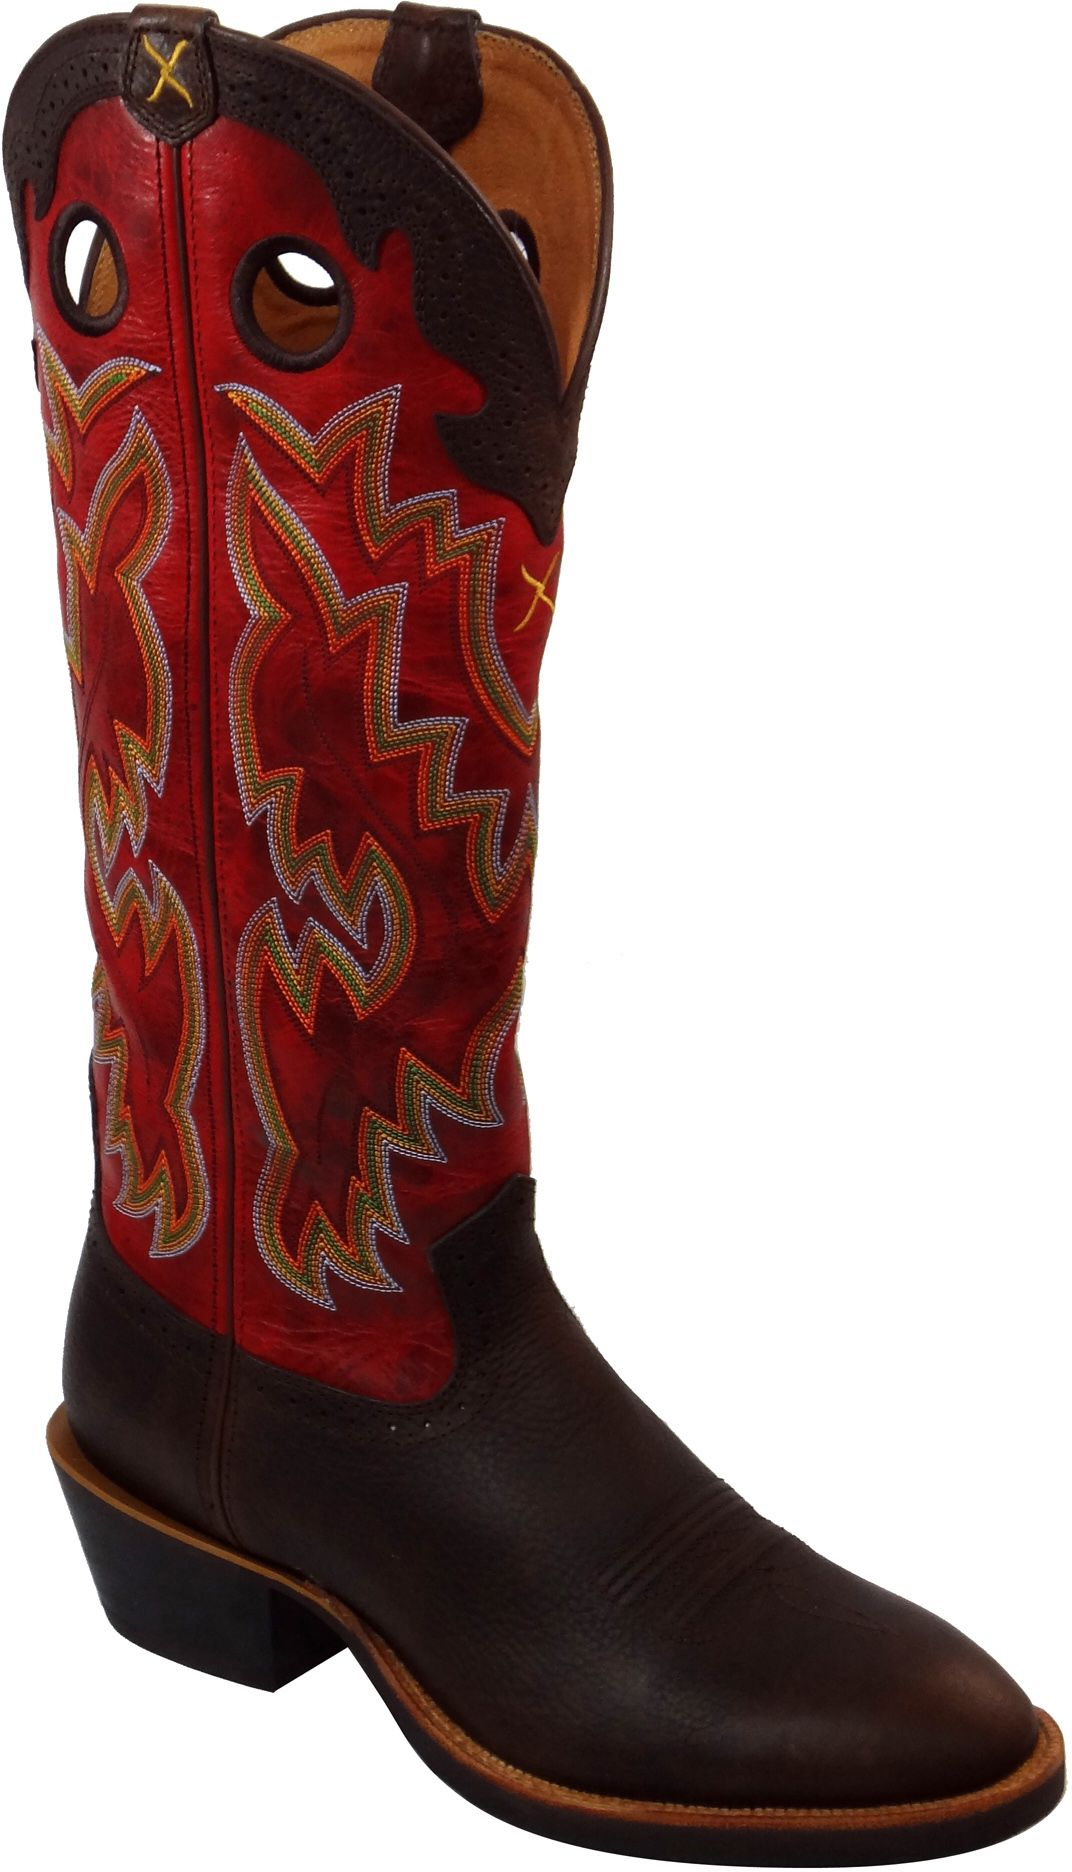 a3958012652 MBK0025 Twisted X Men's Western Boots - Brown | Twisted X Boots ...